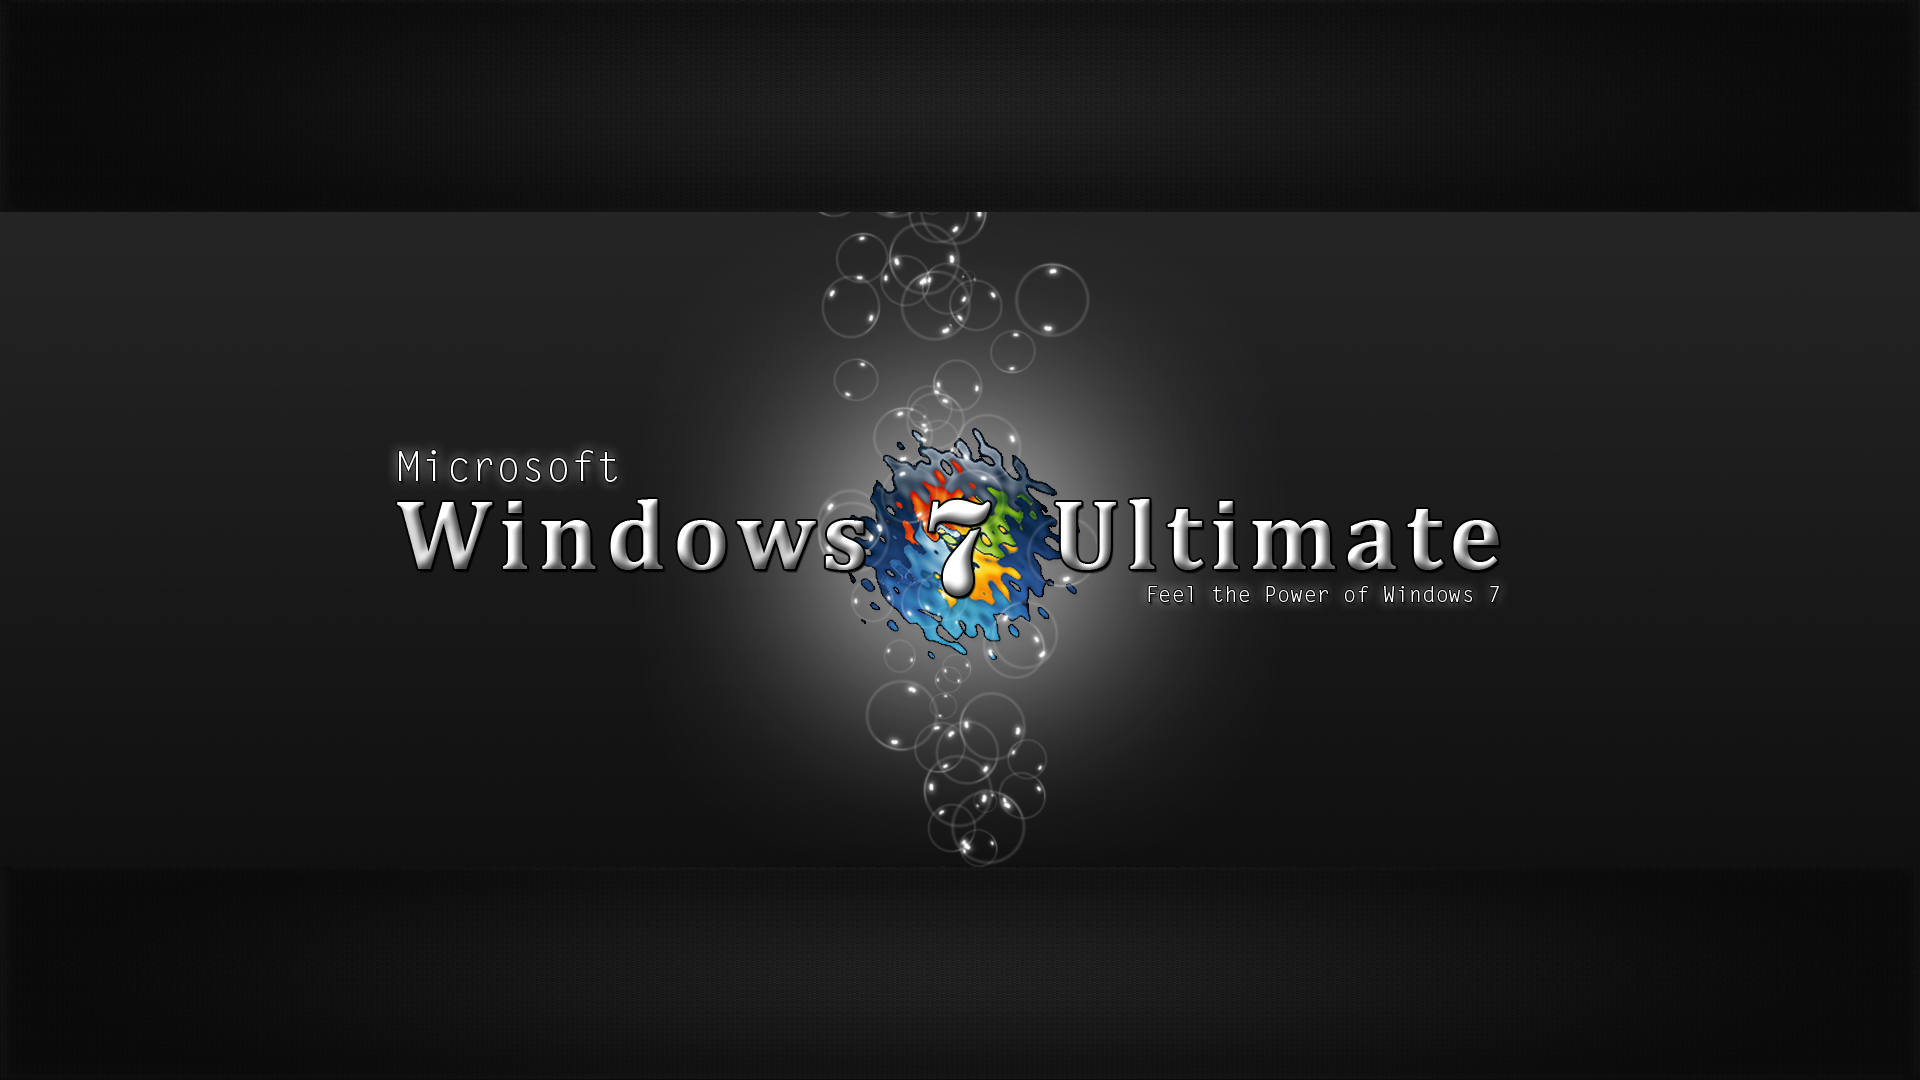 37 High Definition Windows 7 Wallpapers Backgrounds For Free